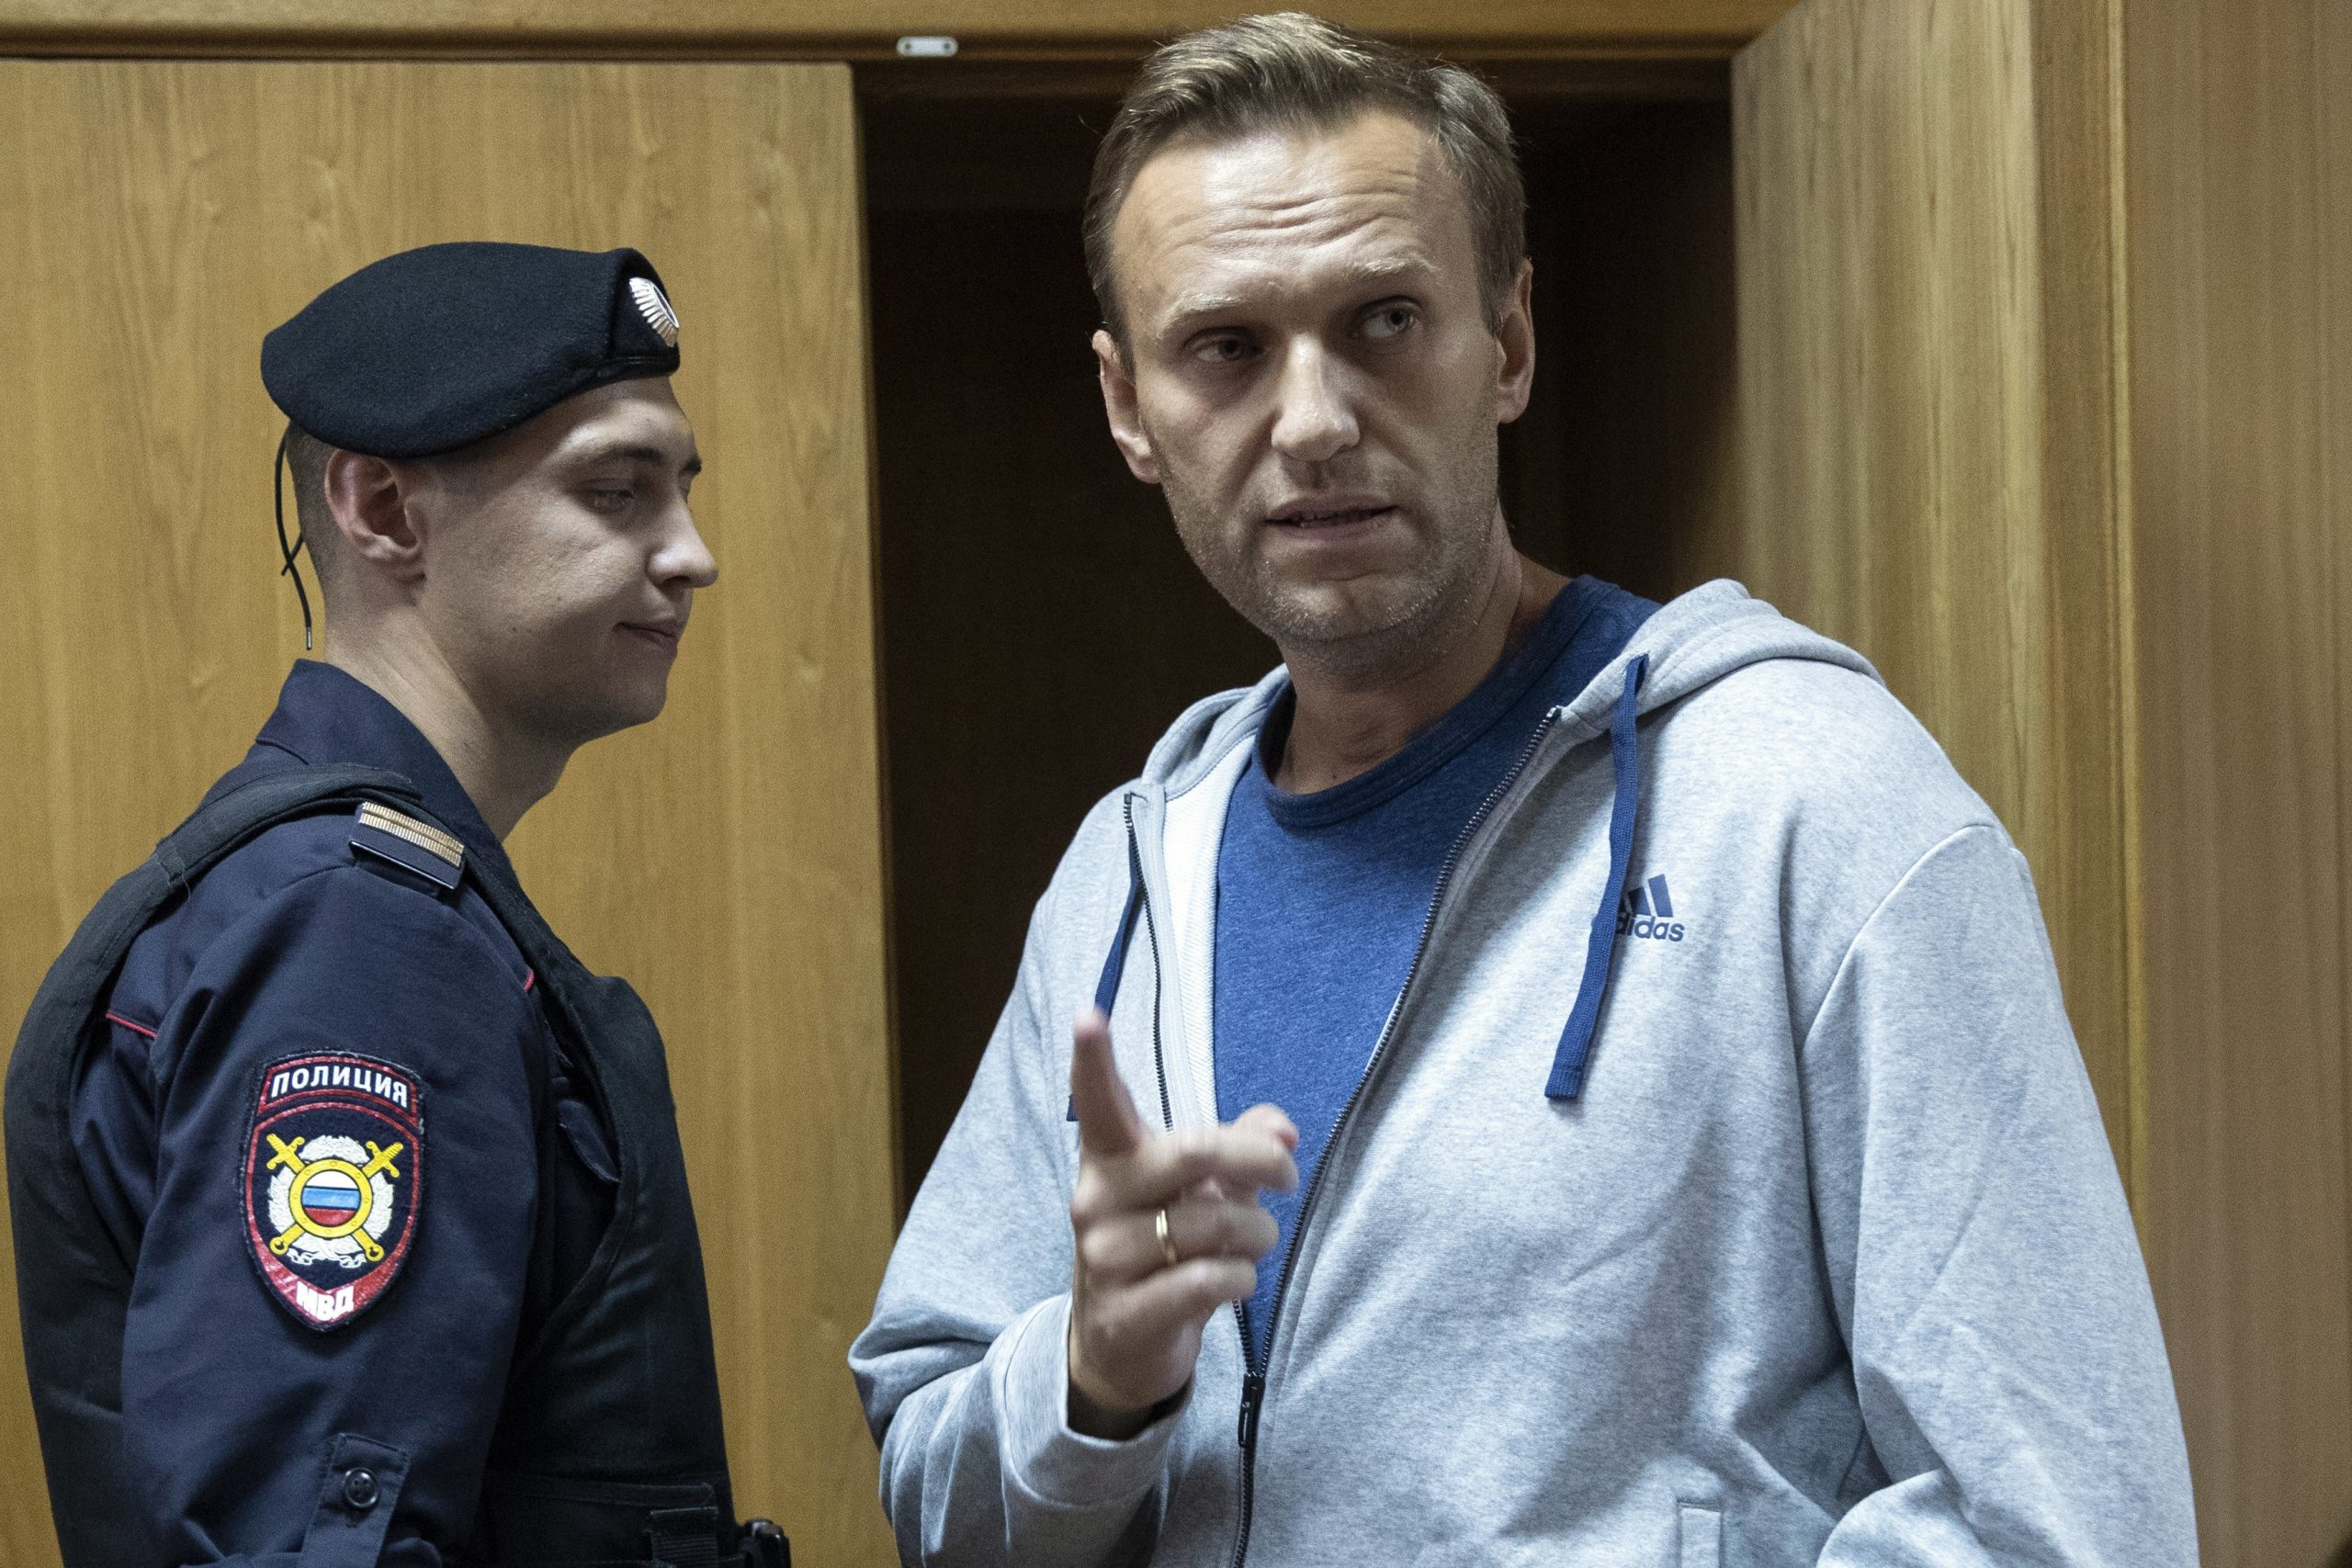 The Kremlin has switched off accusations of Alexei Navalny brushed poisoning